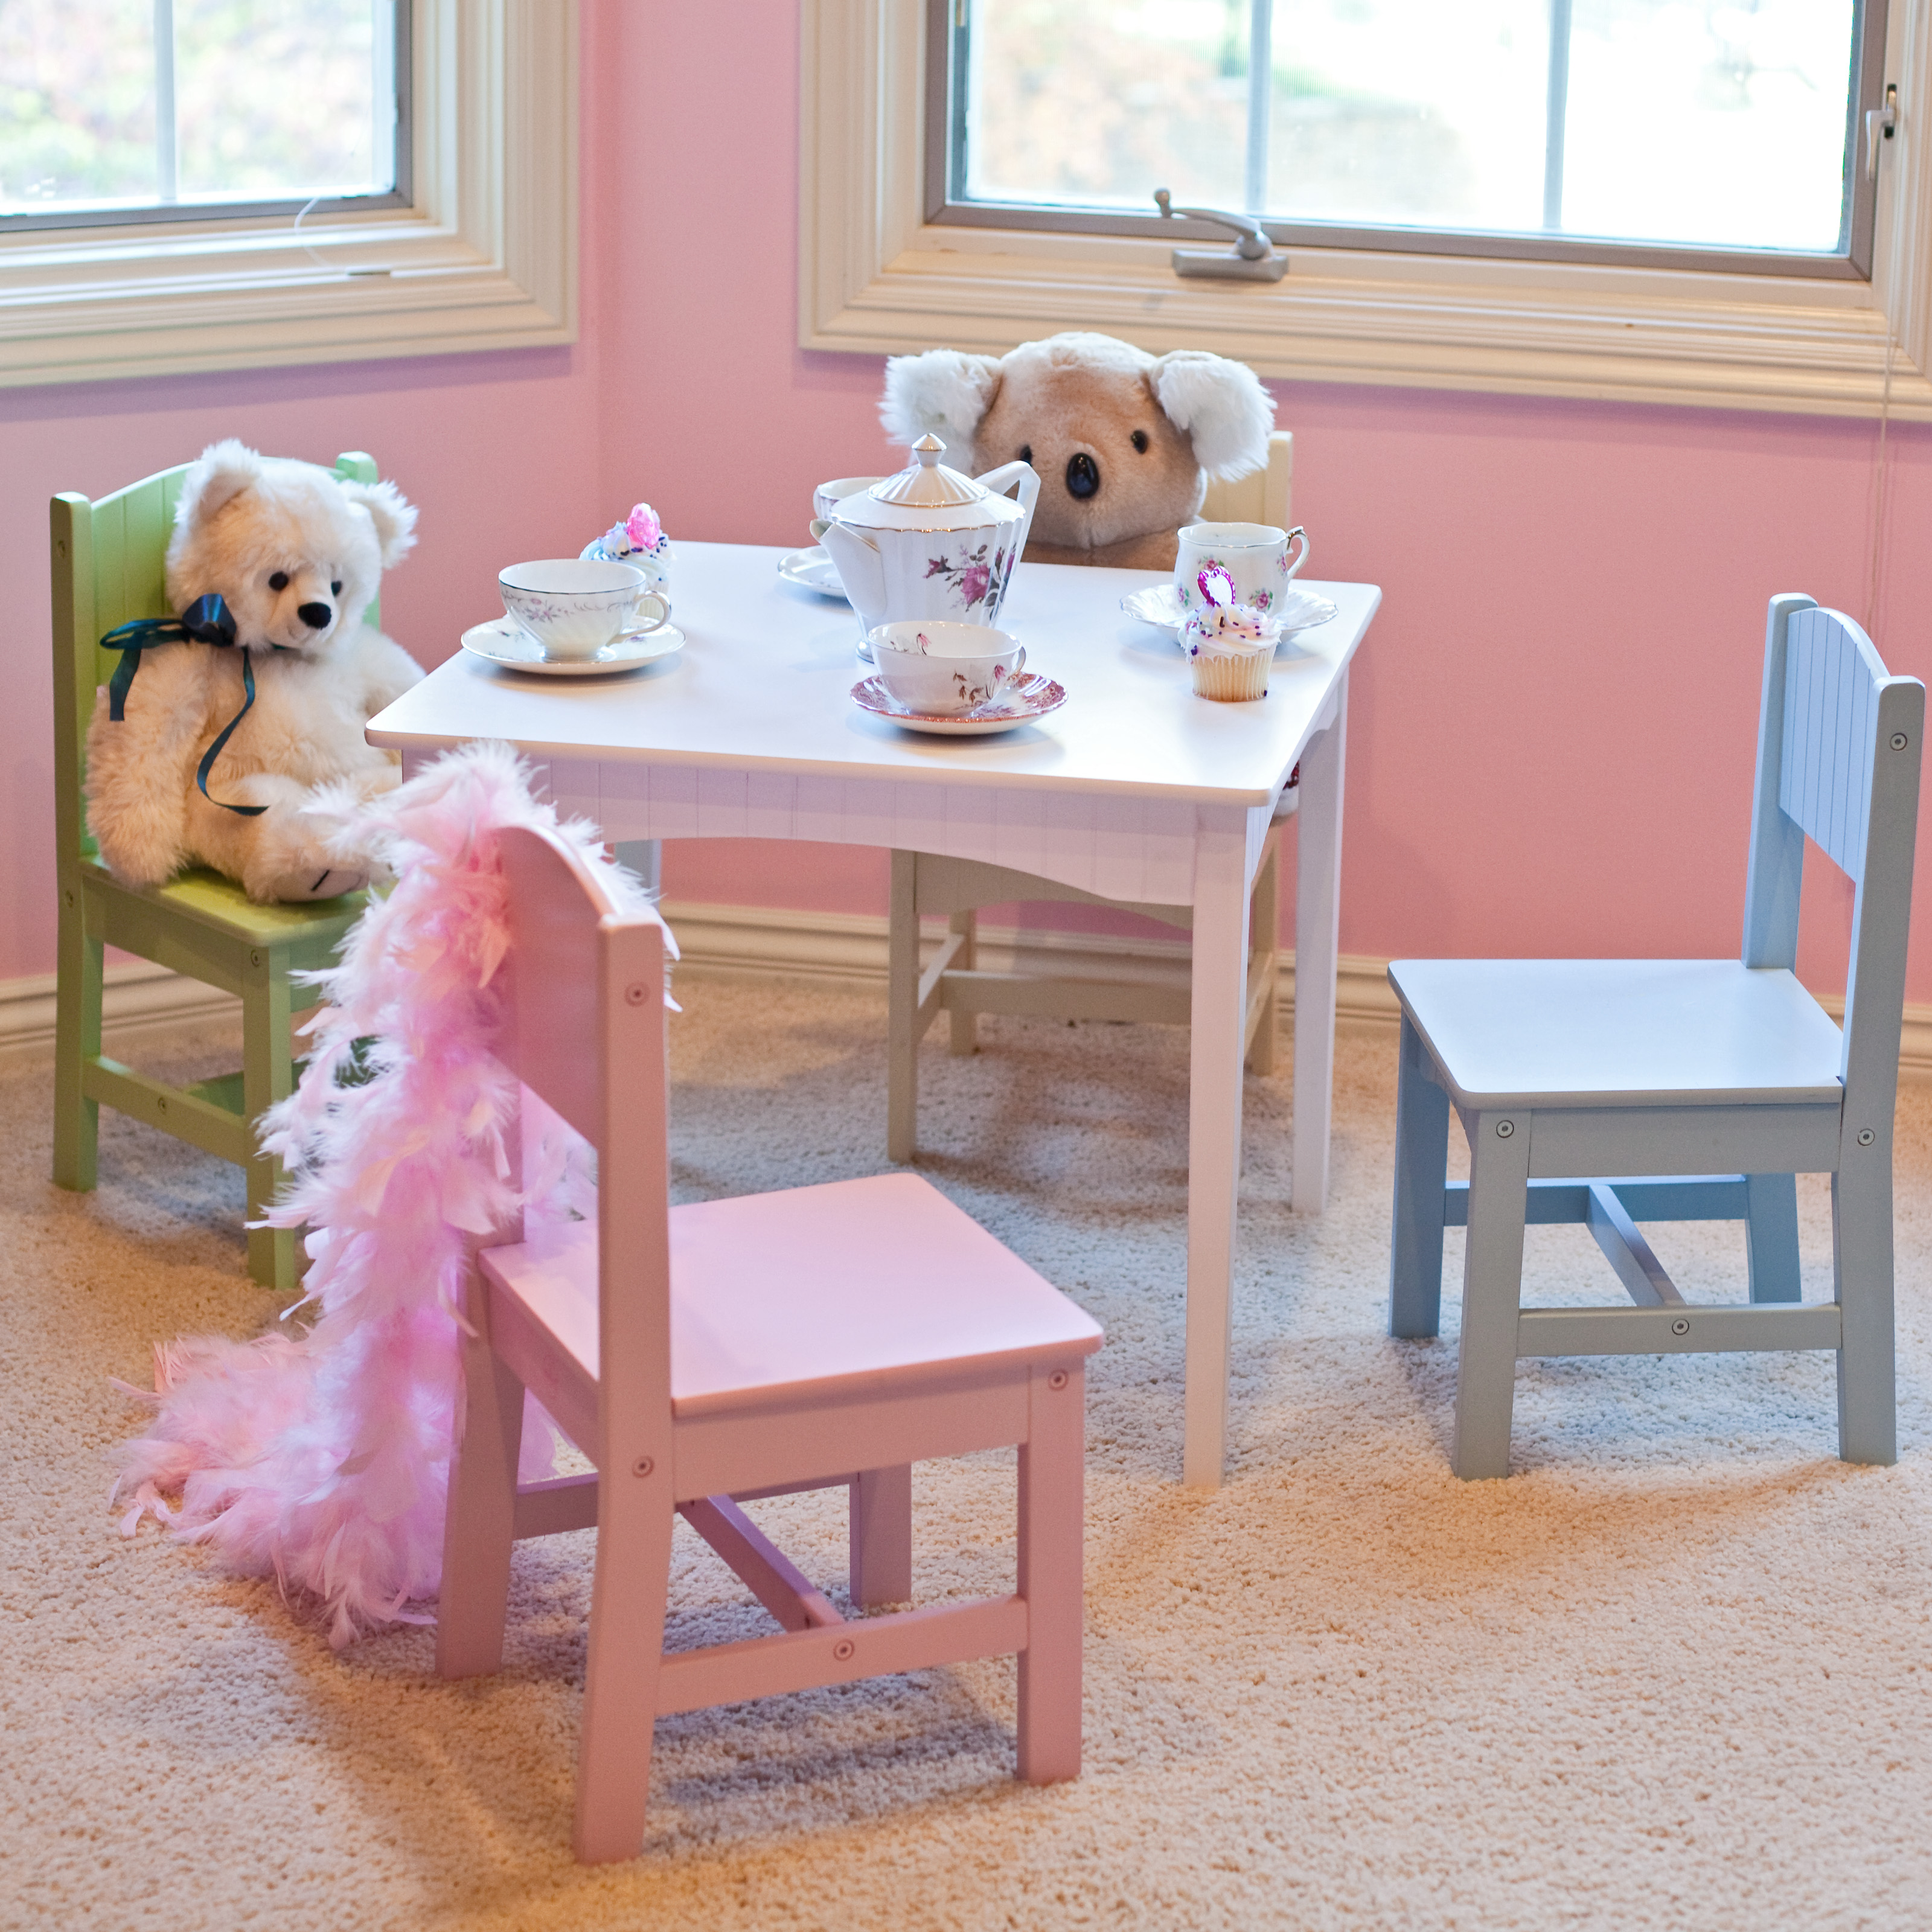 Exceptionnel KidKraft Nantucket Pastel Table And Chair Set   26101